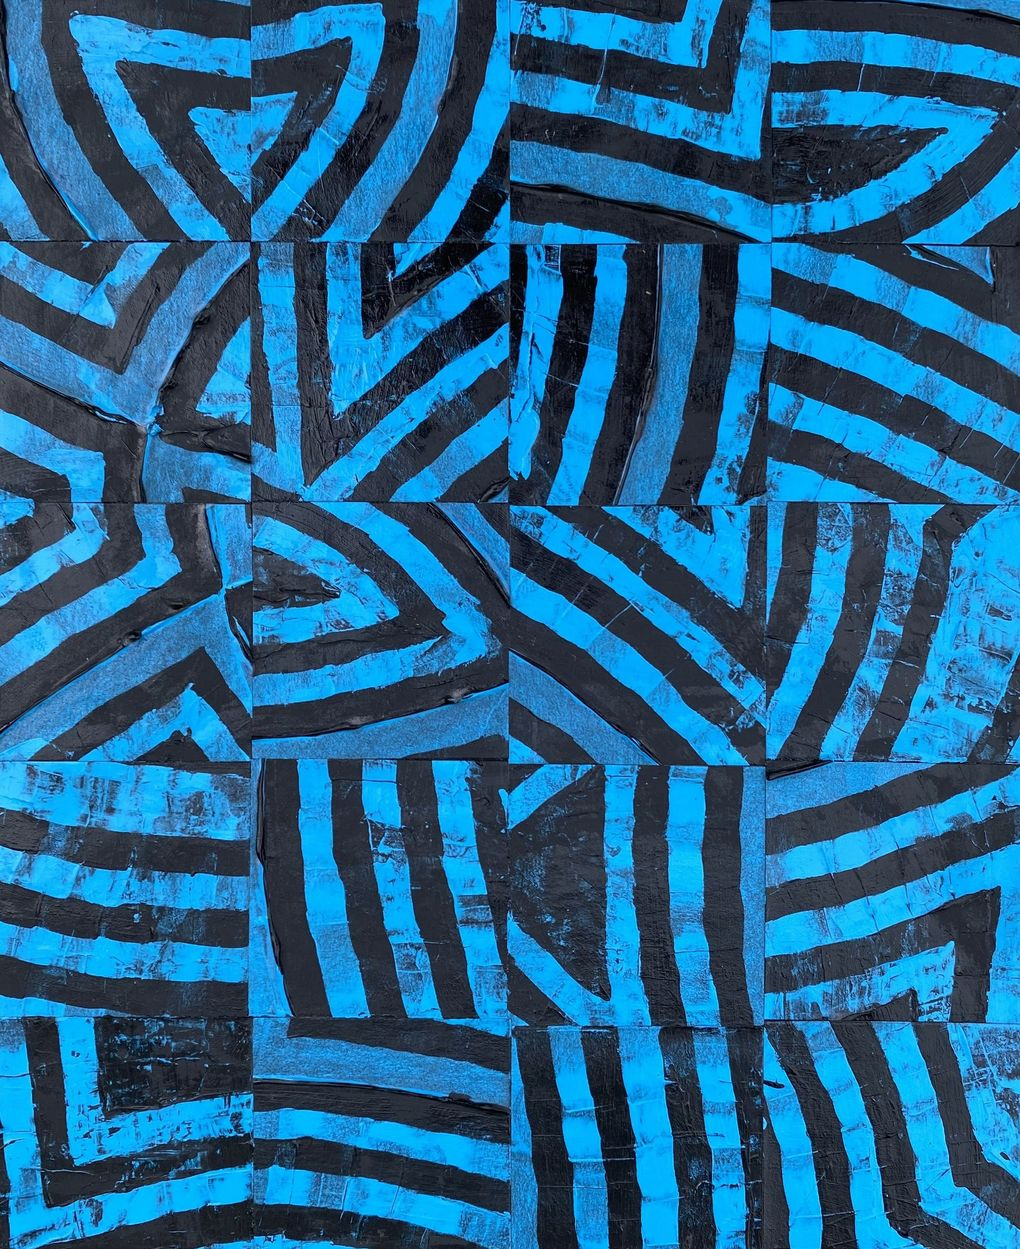 """Jazz Brown's """"Blue Check"""" embodies the highly graphic quality of the artist's new show, """"Intimacy Aware,"""" at J. Rinehart Gallery. (Courtesy of J. Rinehart Gallery)"""